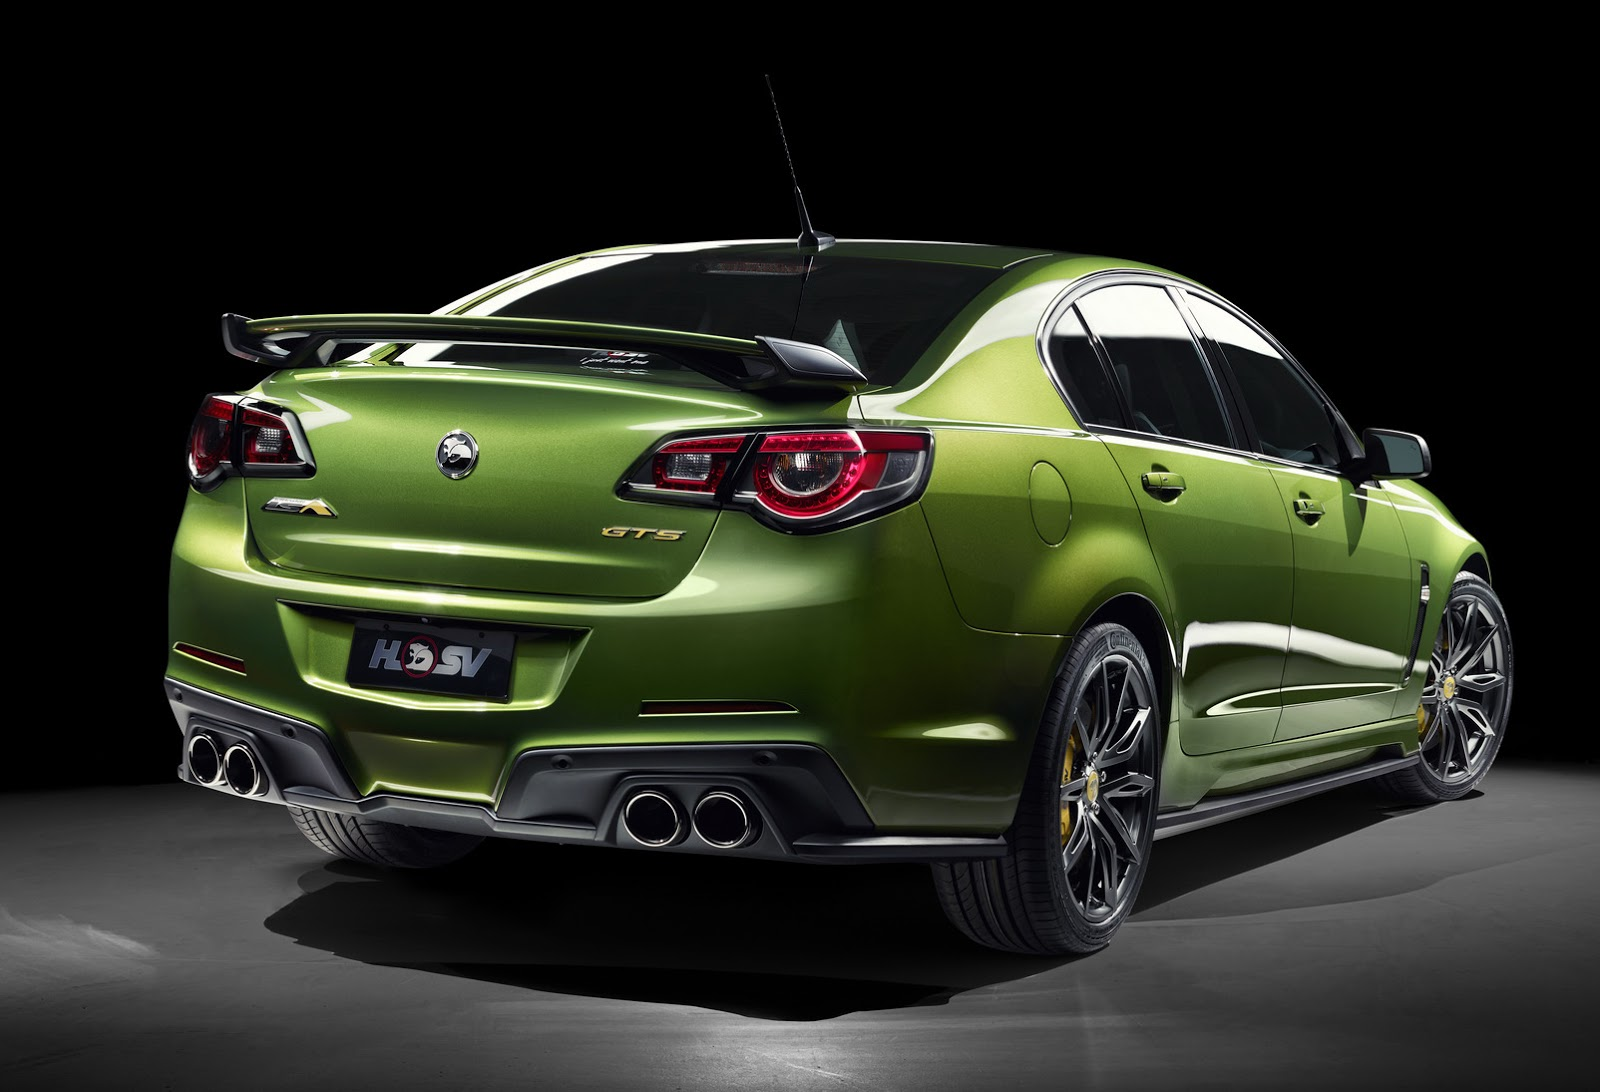 Holden HSV Launches 2016 Supercharged GEN F2 Range